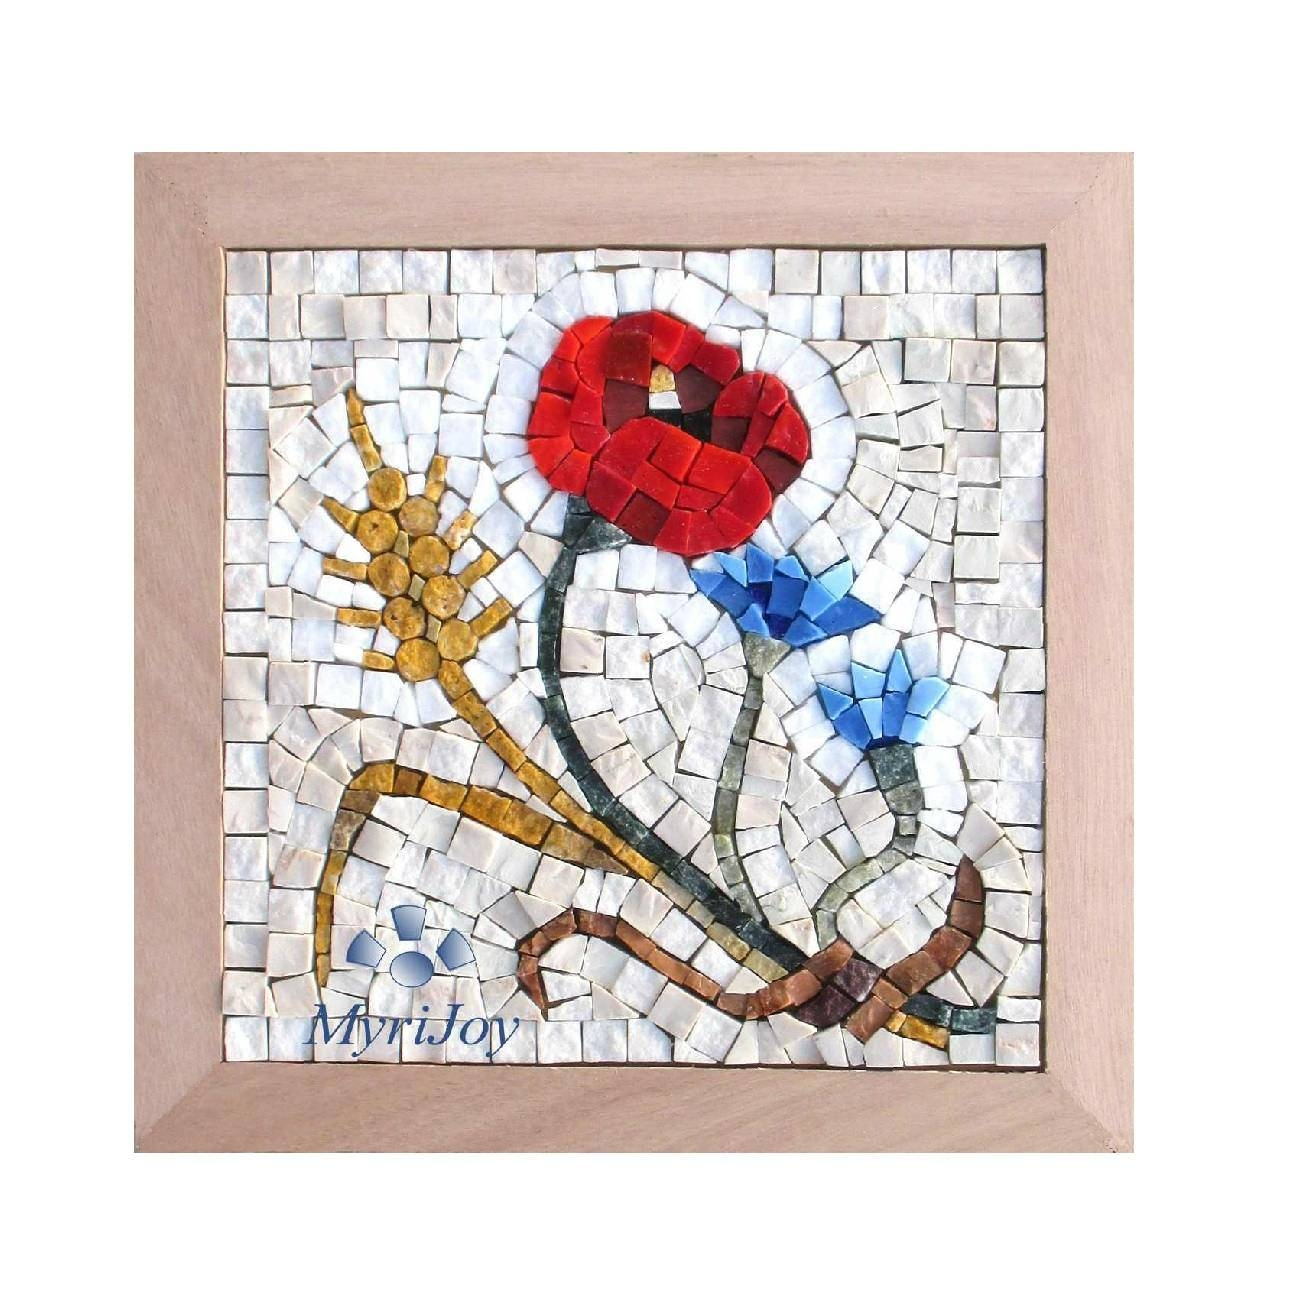 Diy Mosaic Craft Kit For Adults: Four Seasons Summer Mosaic With Recent Mosaic Art Kits For Adults (View 14 of 20)